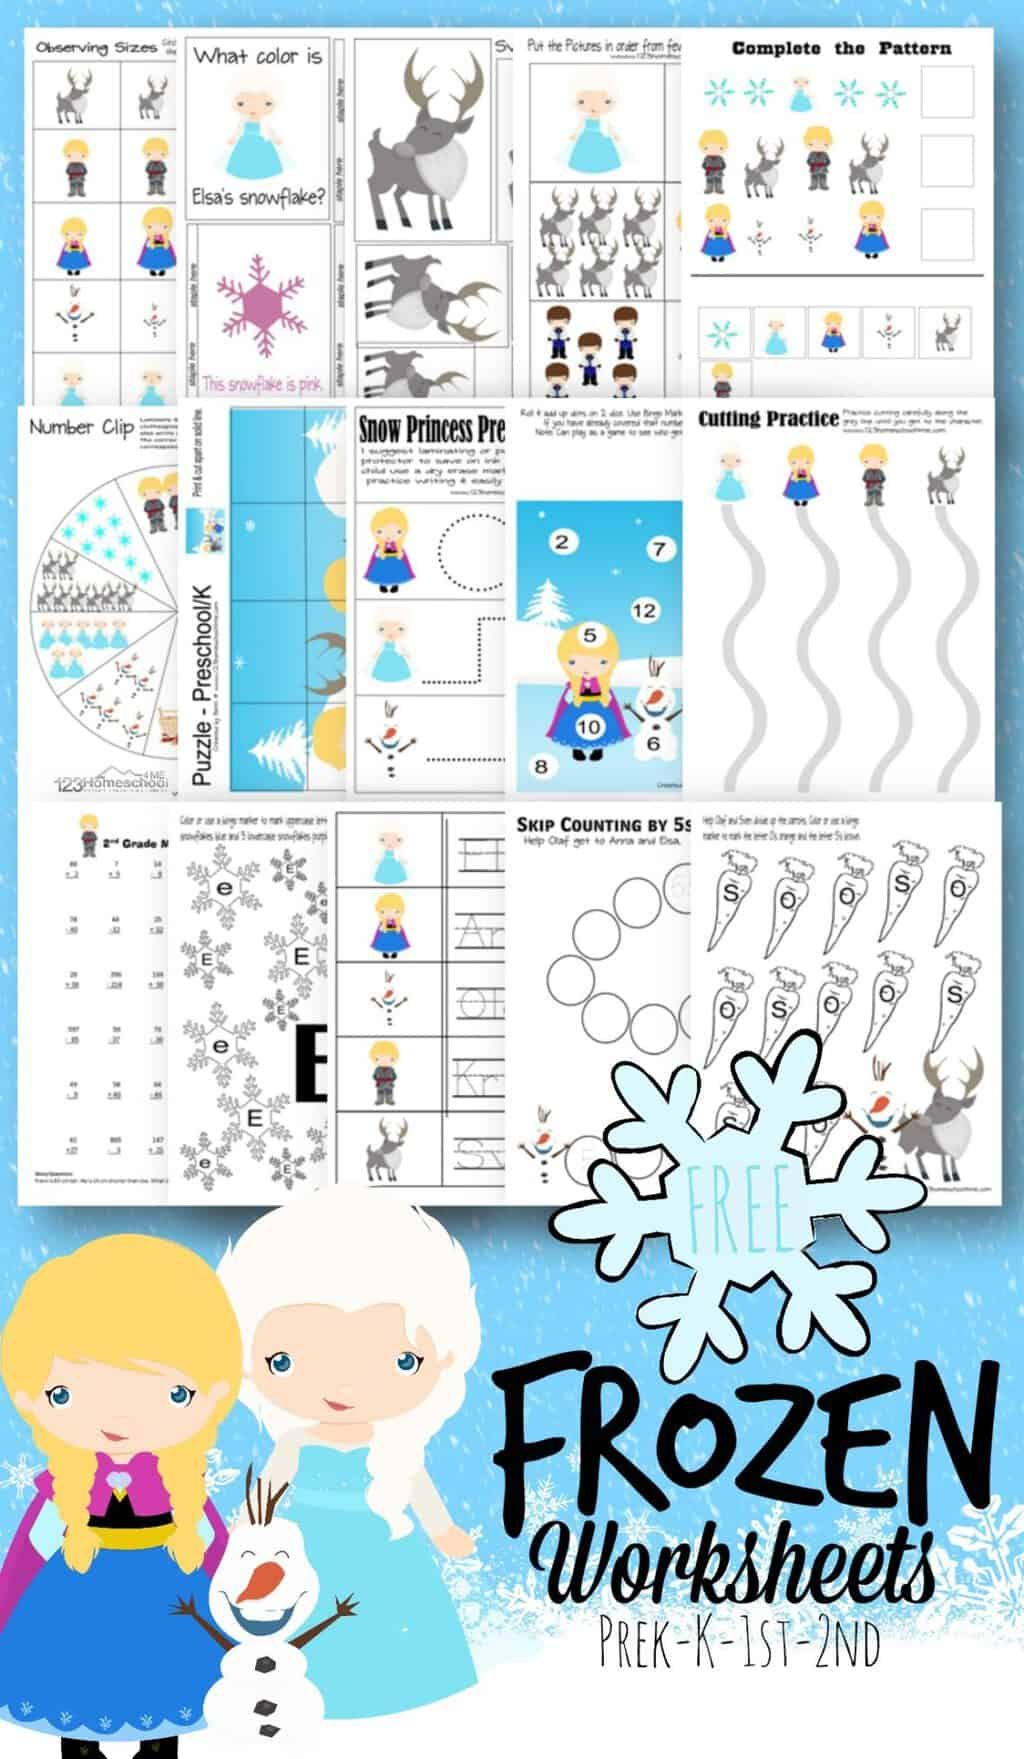 Free Frozen Worksheets For Kids In